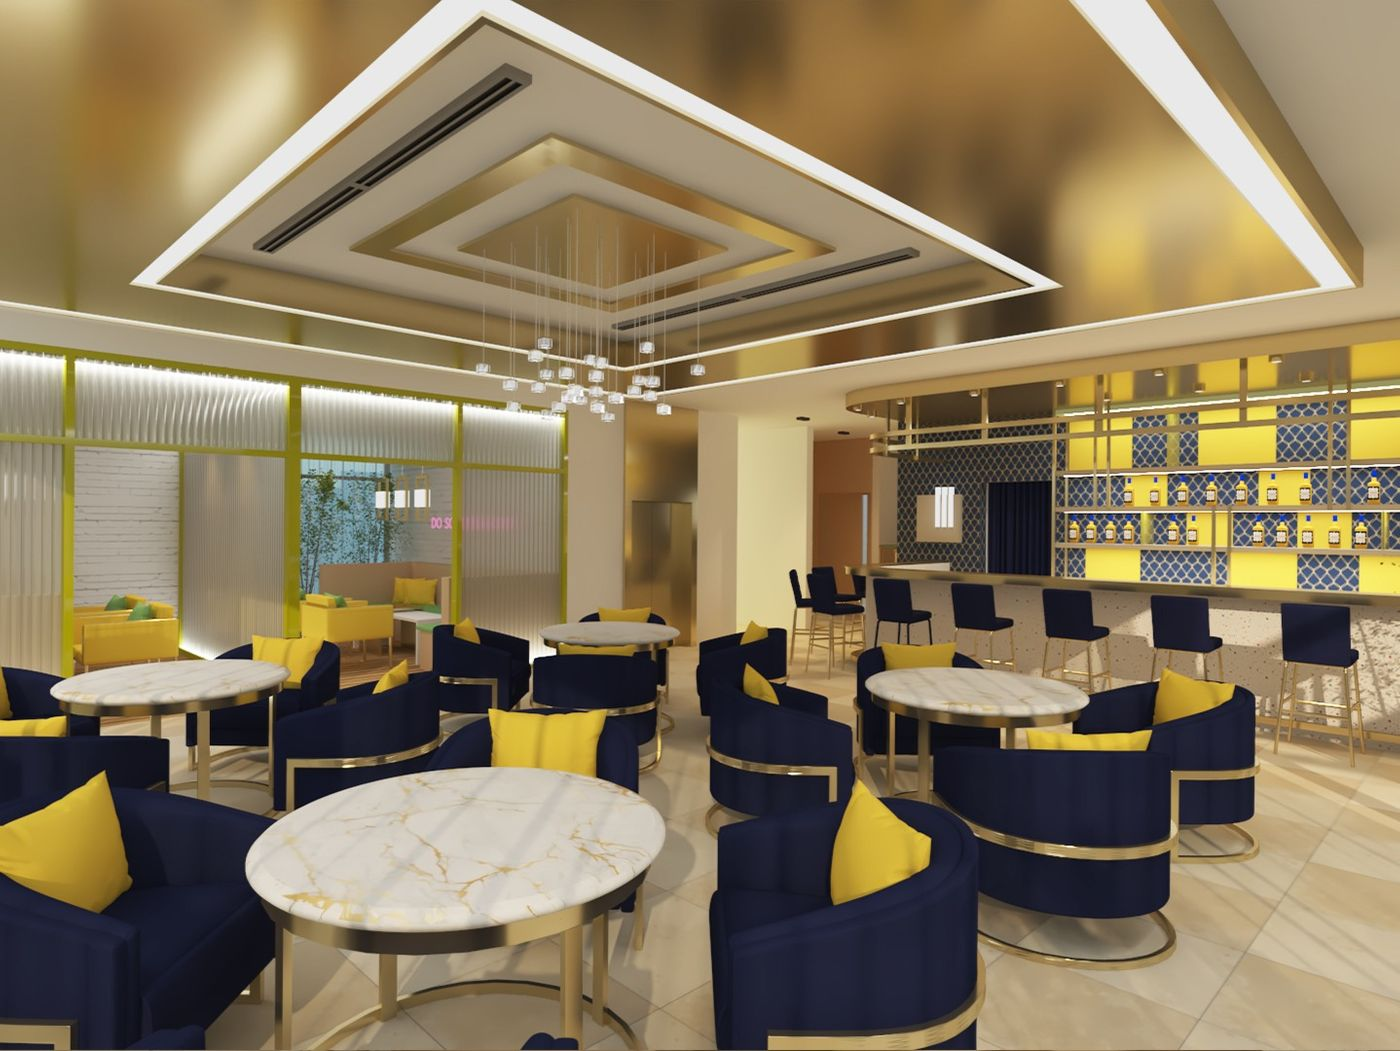 RESTAURANT OUTLET DESIGN